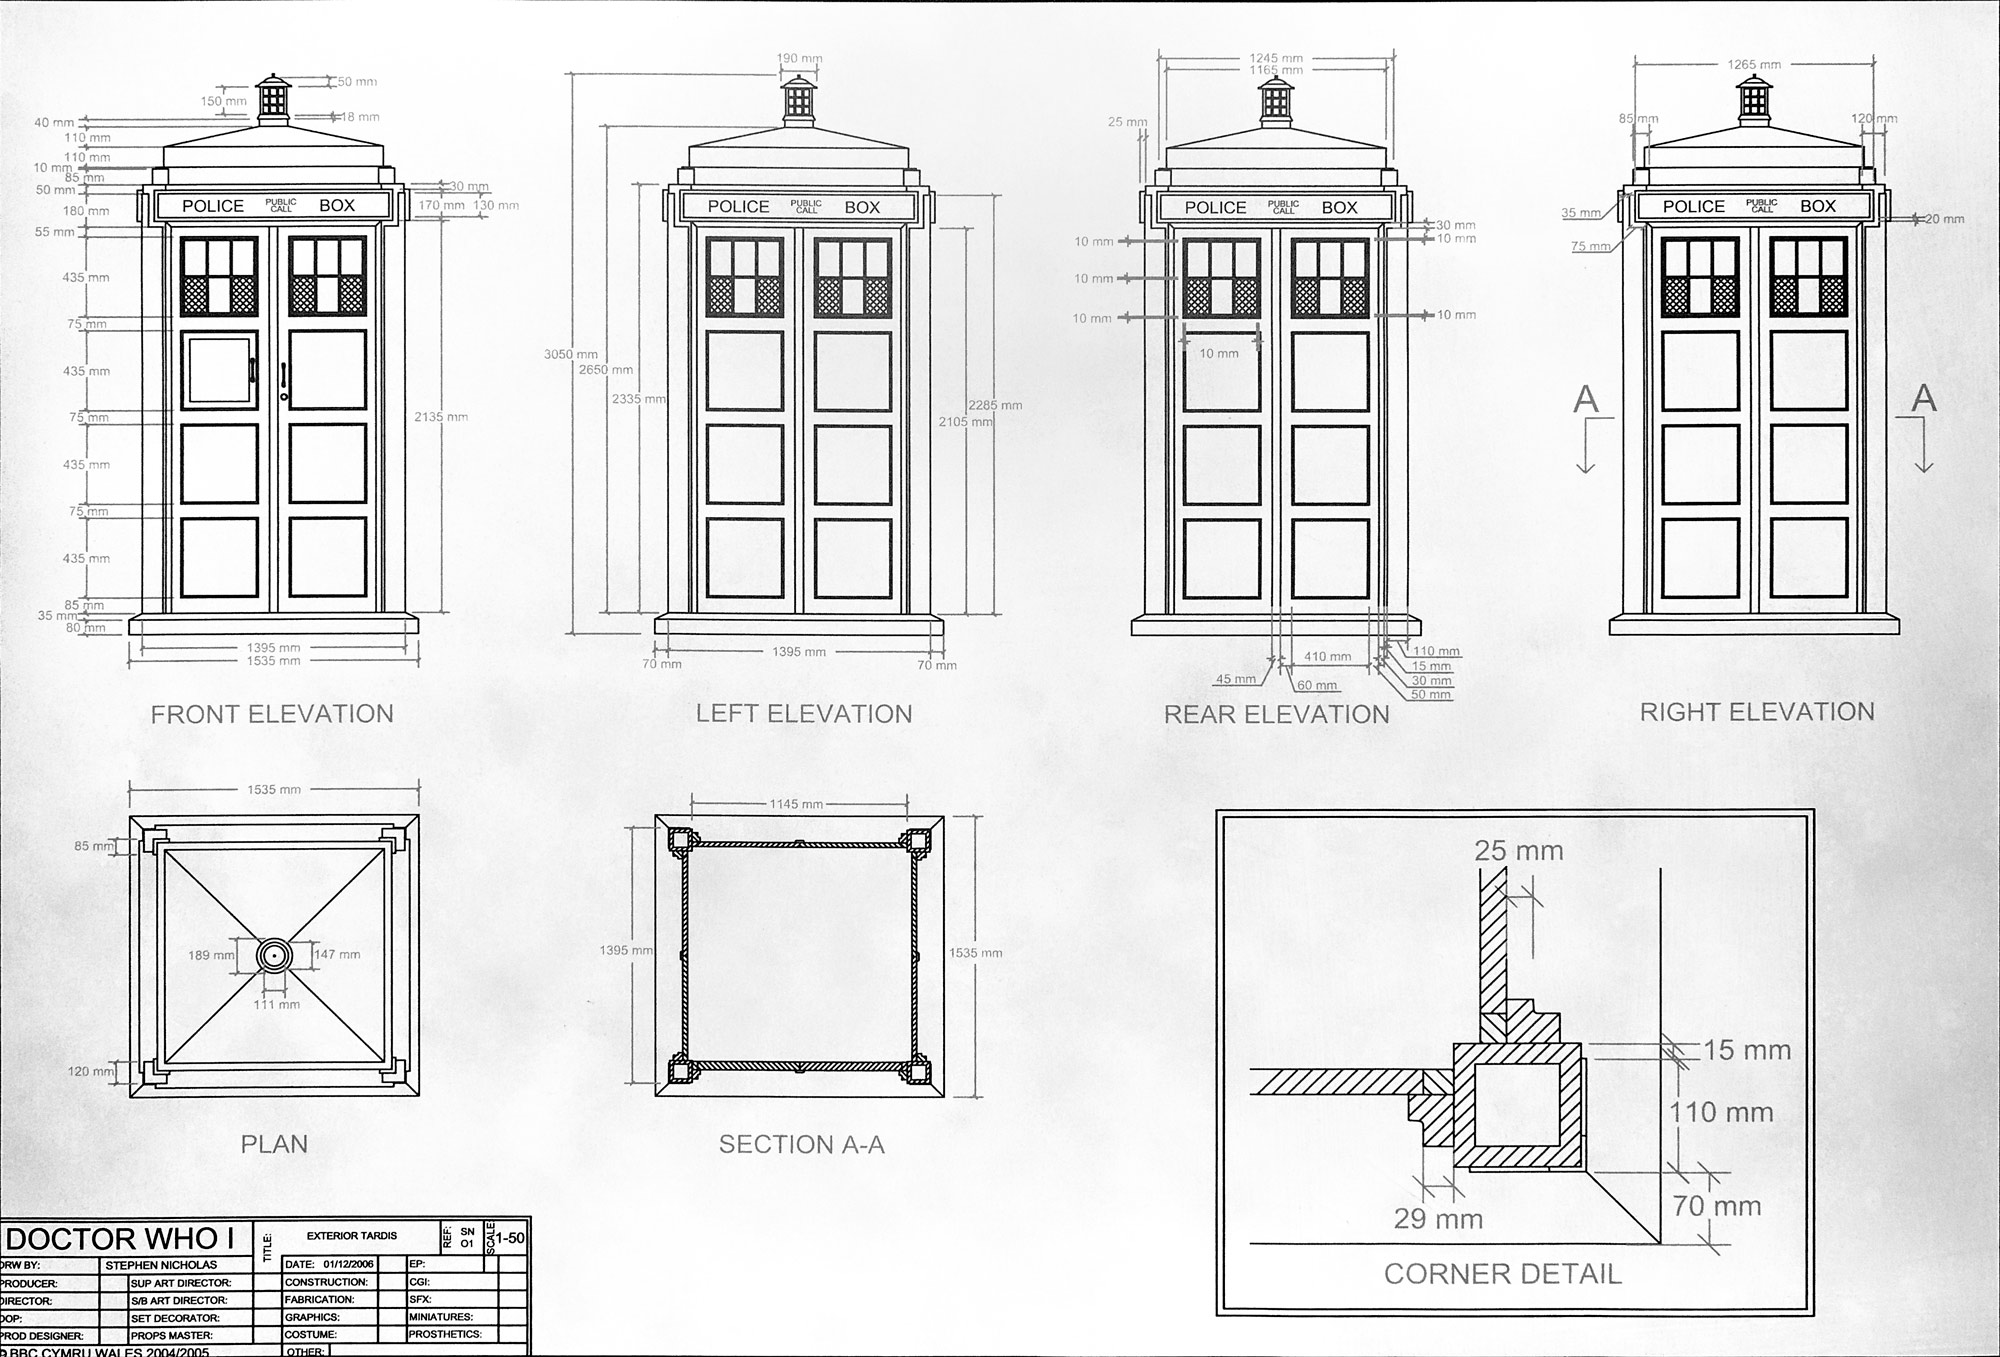 Bits to atoms 3d printing an accurate replica tardis tested the best laid plans malvernweather Images